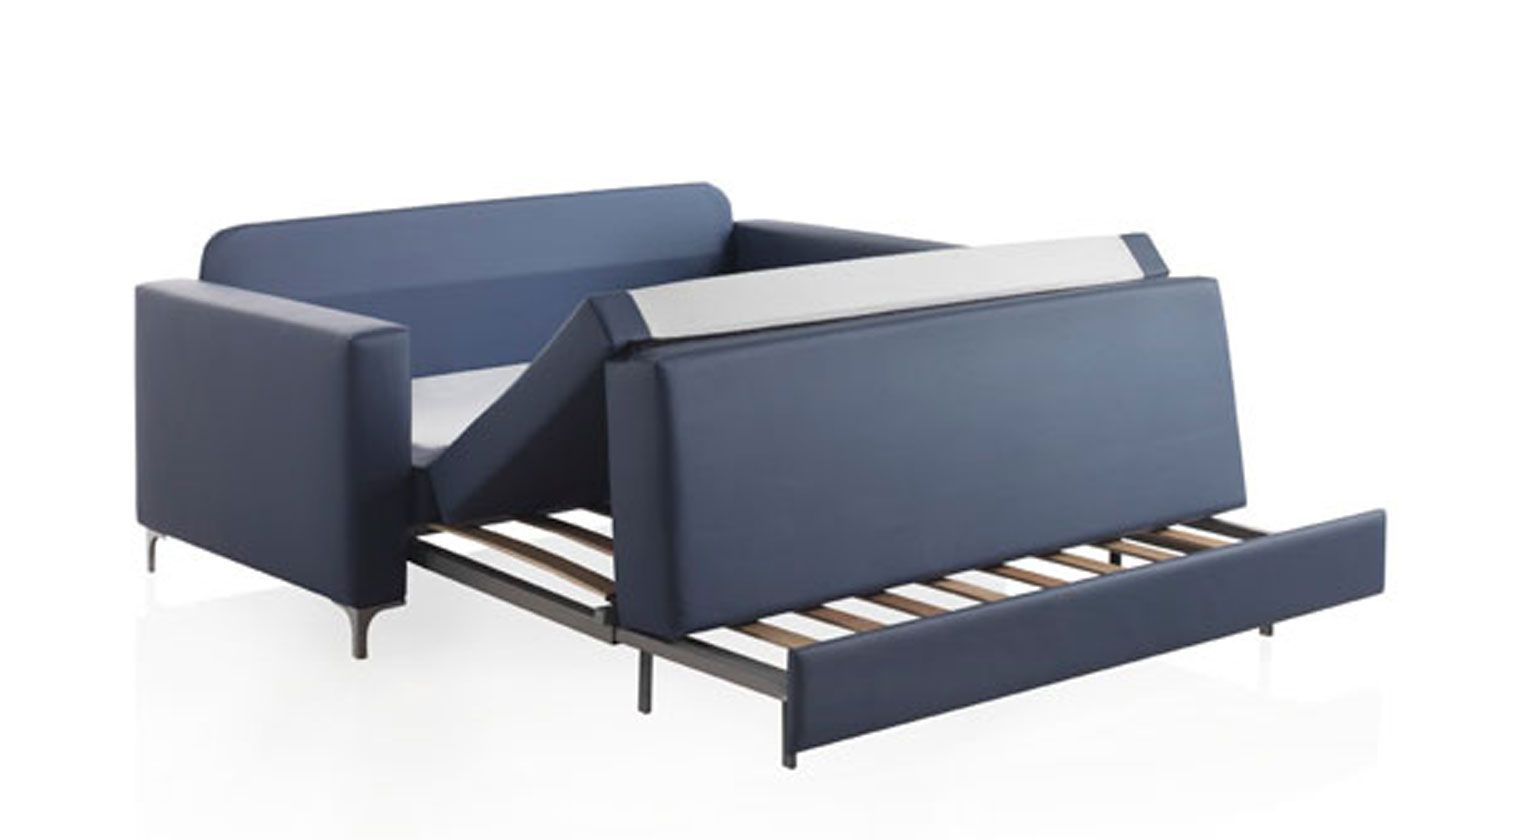 Sof cama brest sofas cama extensible nido for Sillon cama de una plaza y media